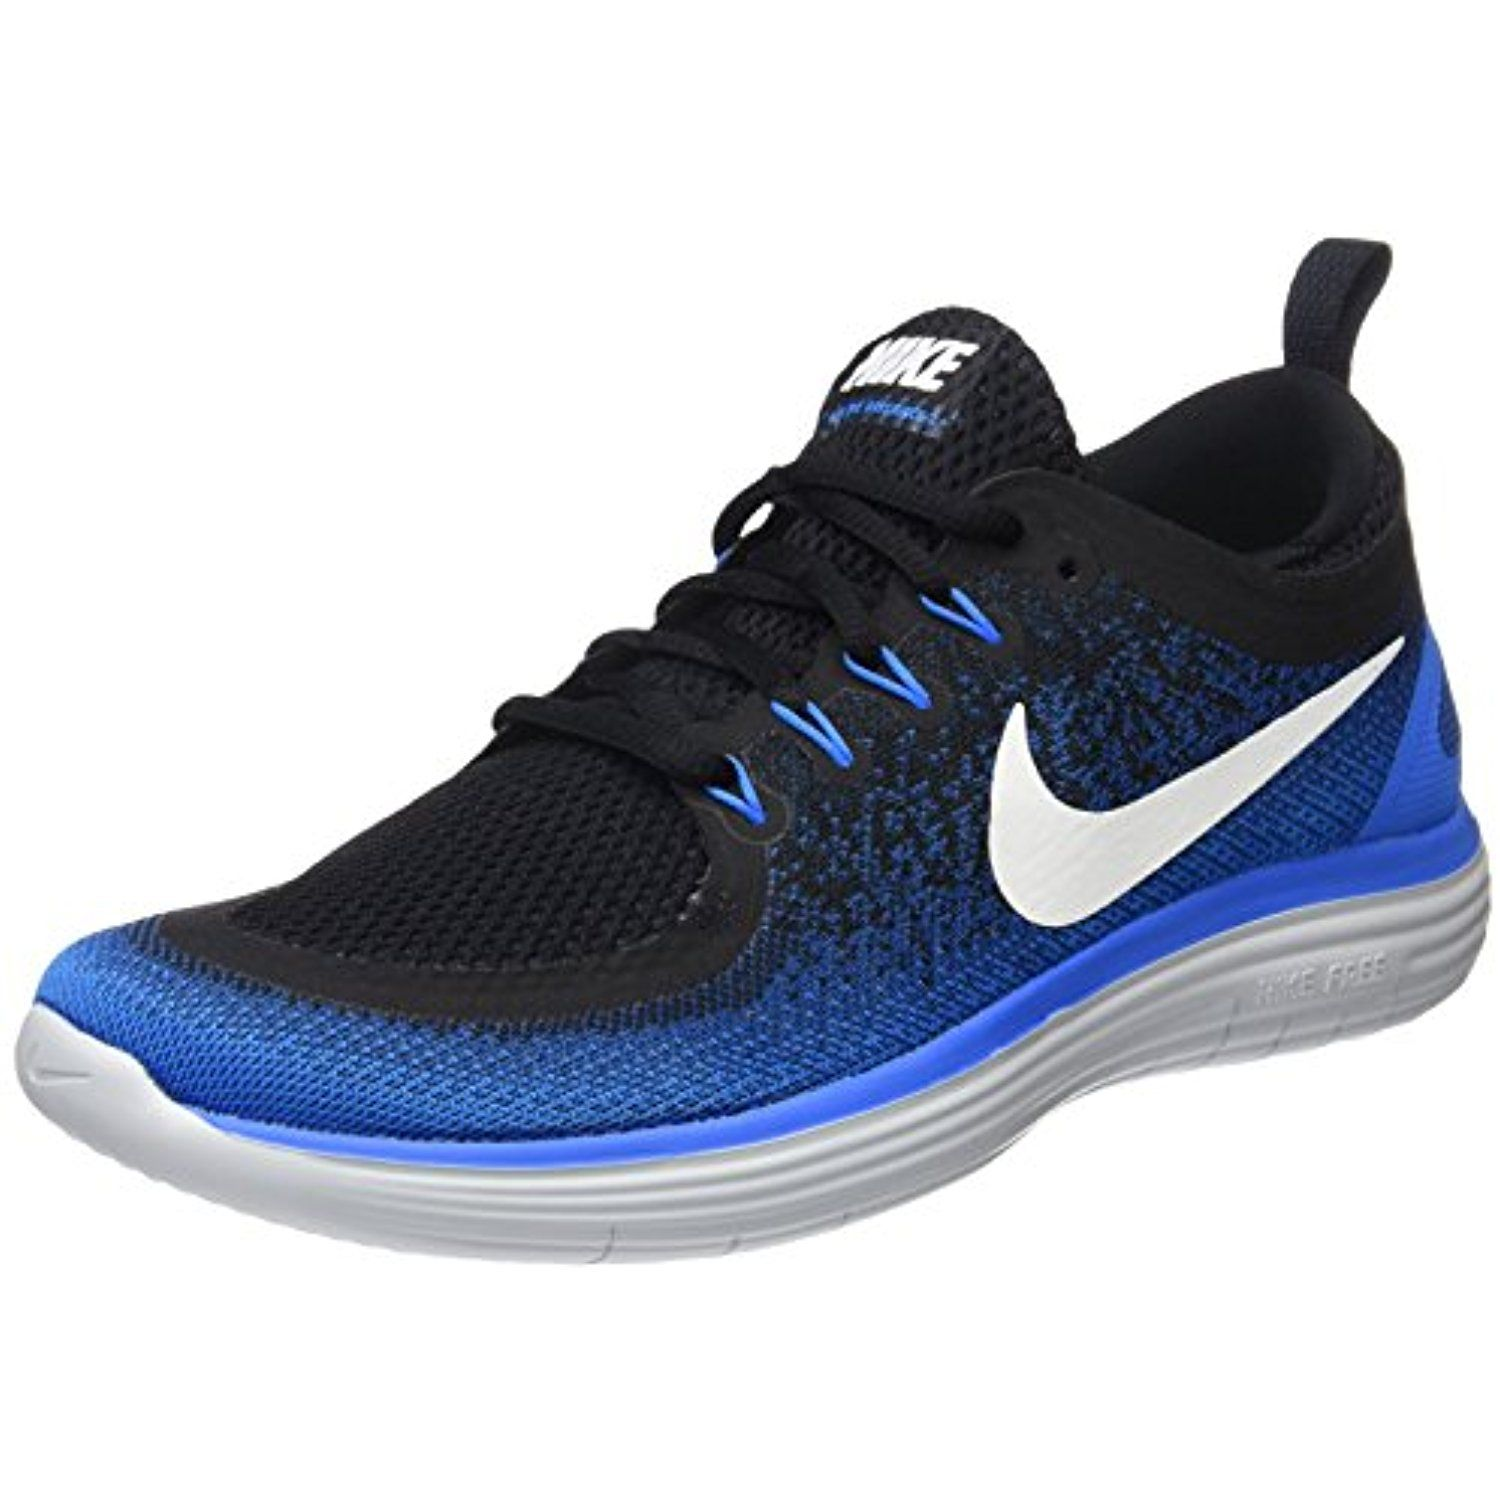 on sale 965a6 6525e Nike Mens Free RN Distance 2 Running Shoes *** Want ...